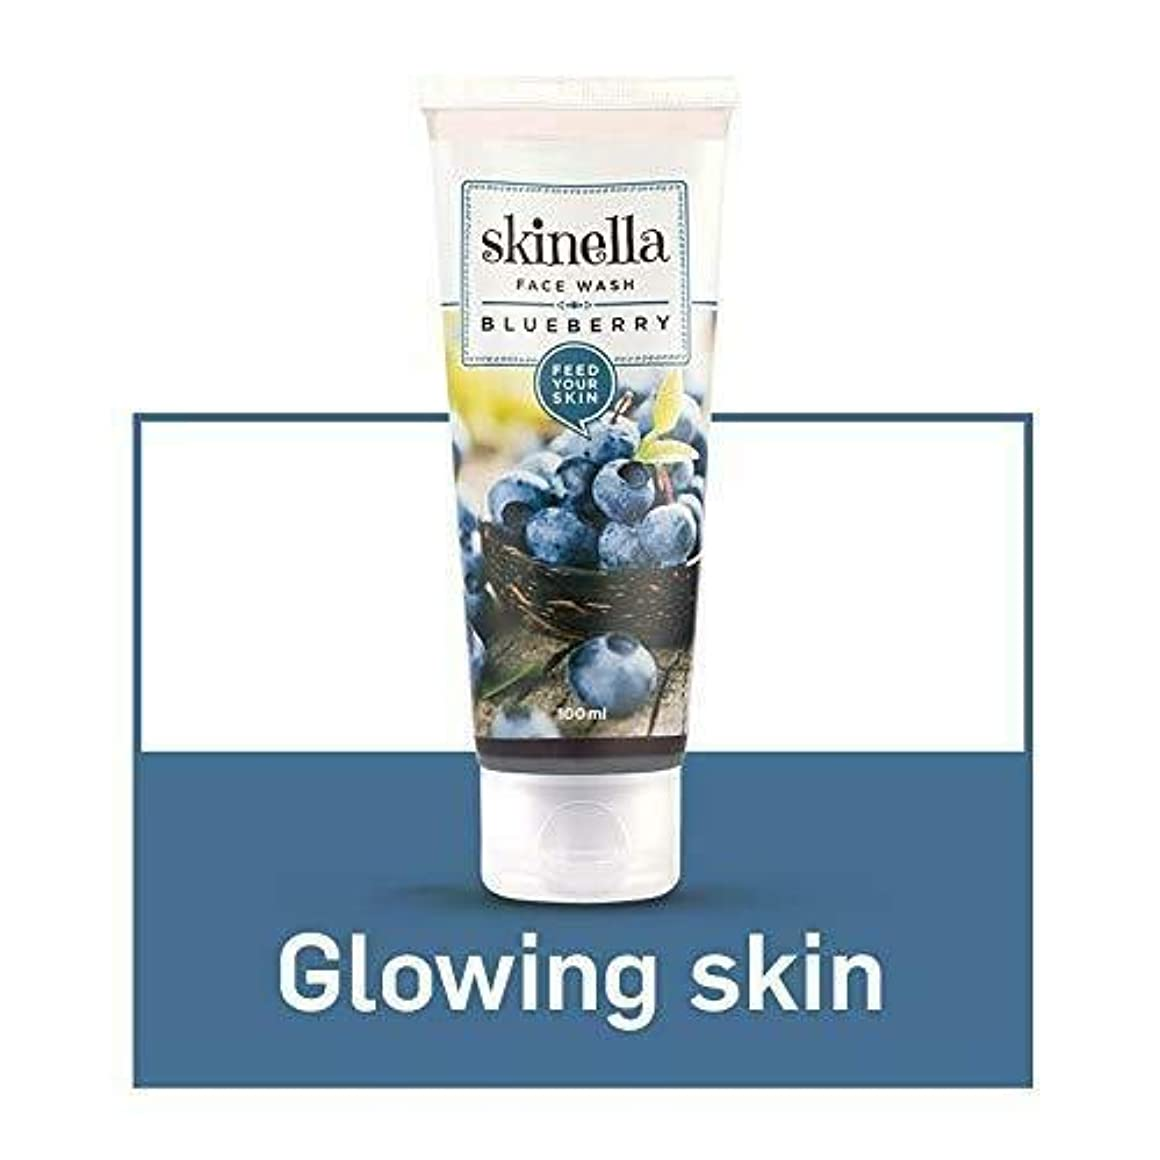 弱いスカリーSkinella Blueberry Face Wash 100ml blueberry extracts & olive oil Cleanses Skin Skinellaブルーベリーフェイスウォッシュ ブルーベリーエキス...